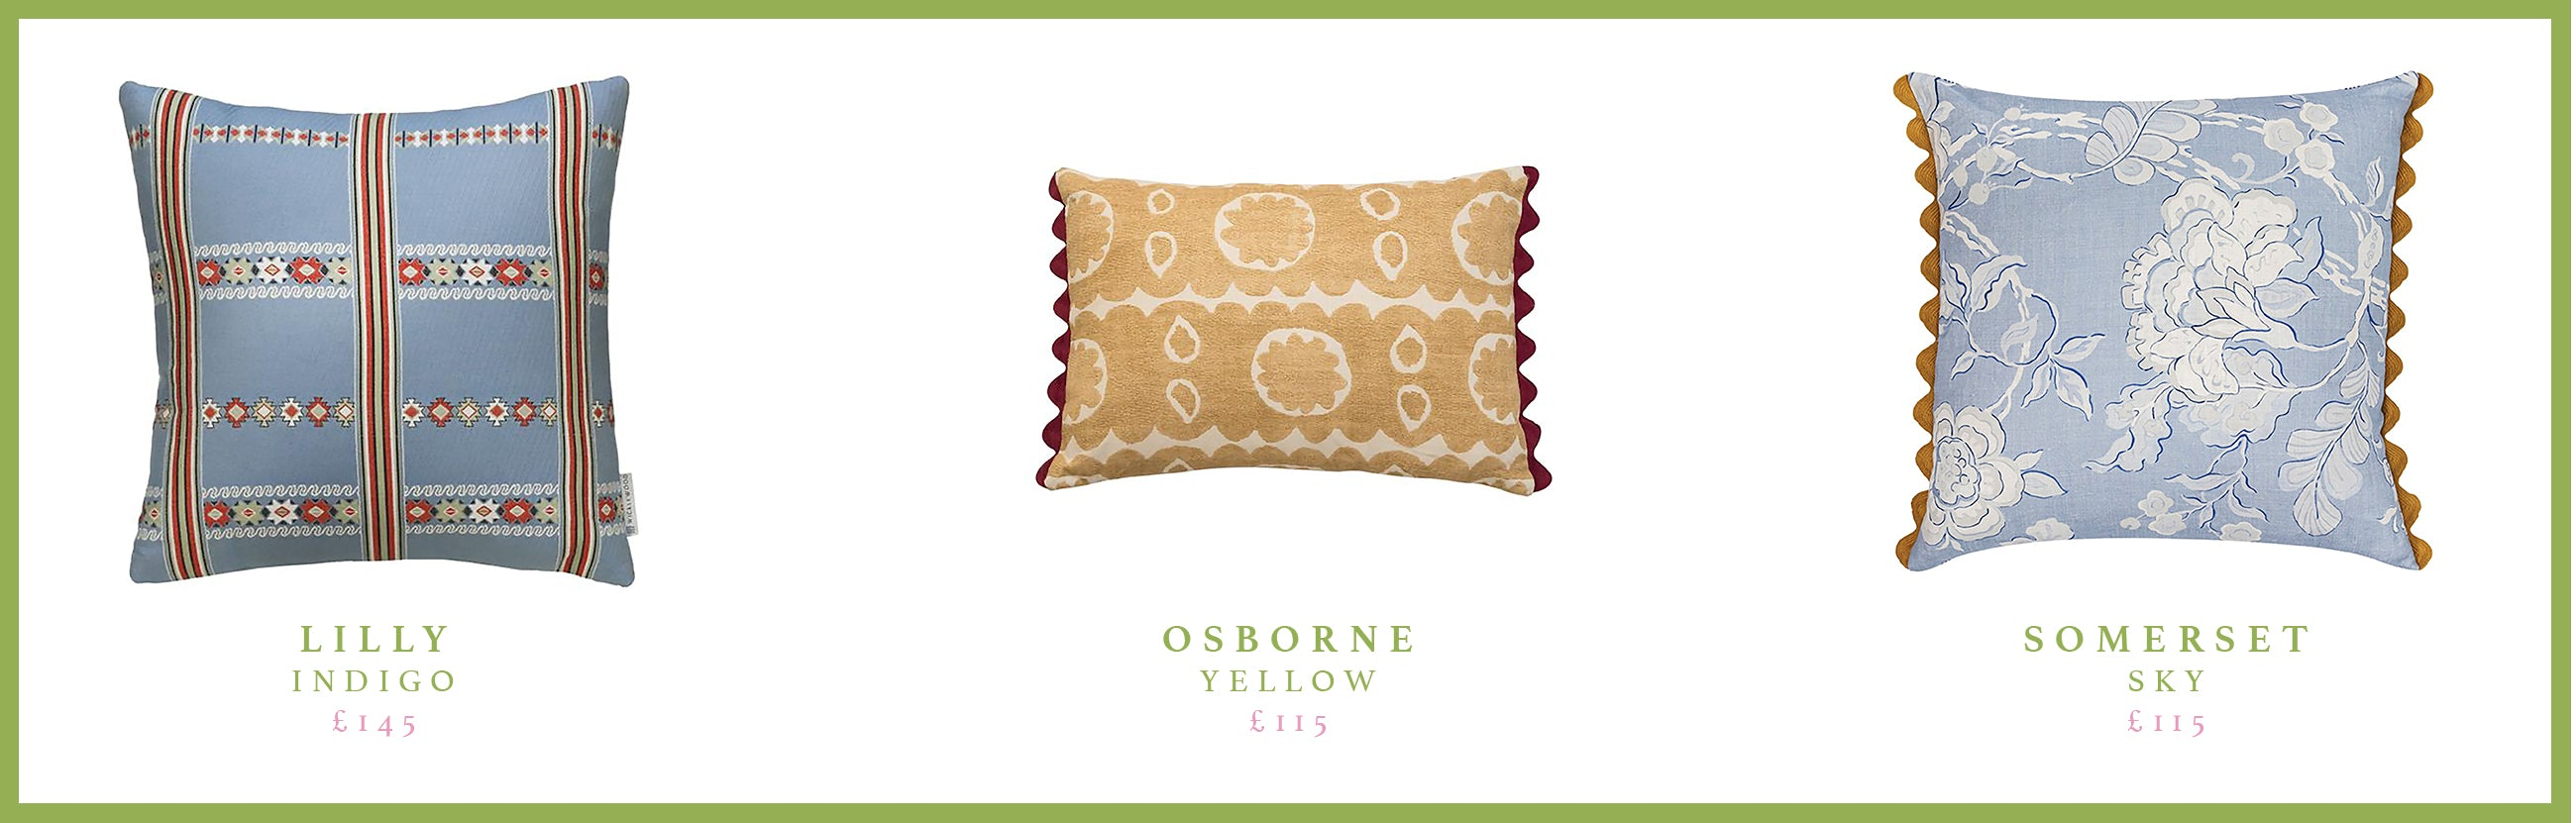 Willemien Bardawil's favourite Wicklewood cushions